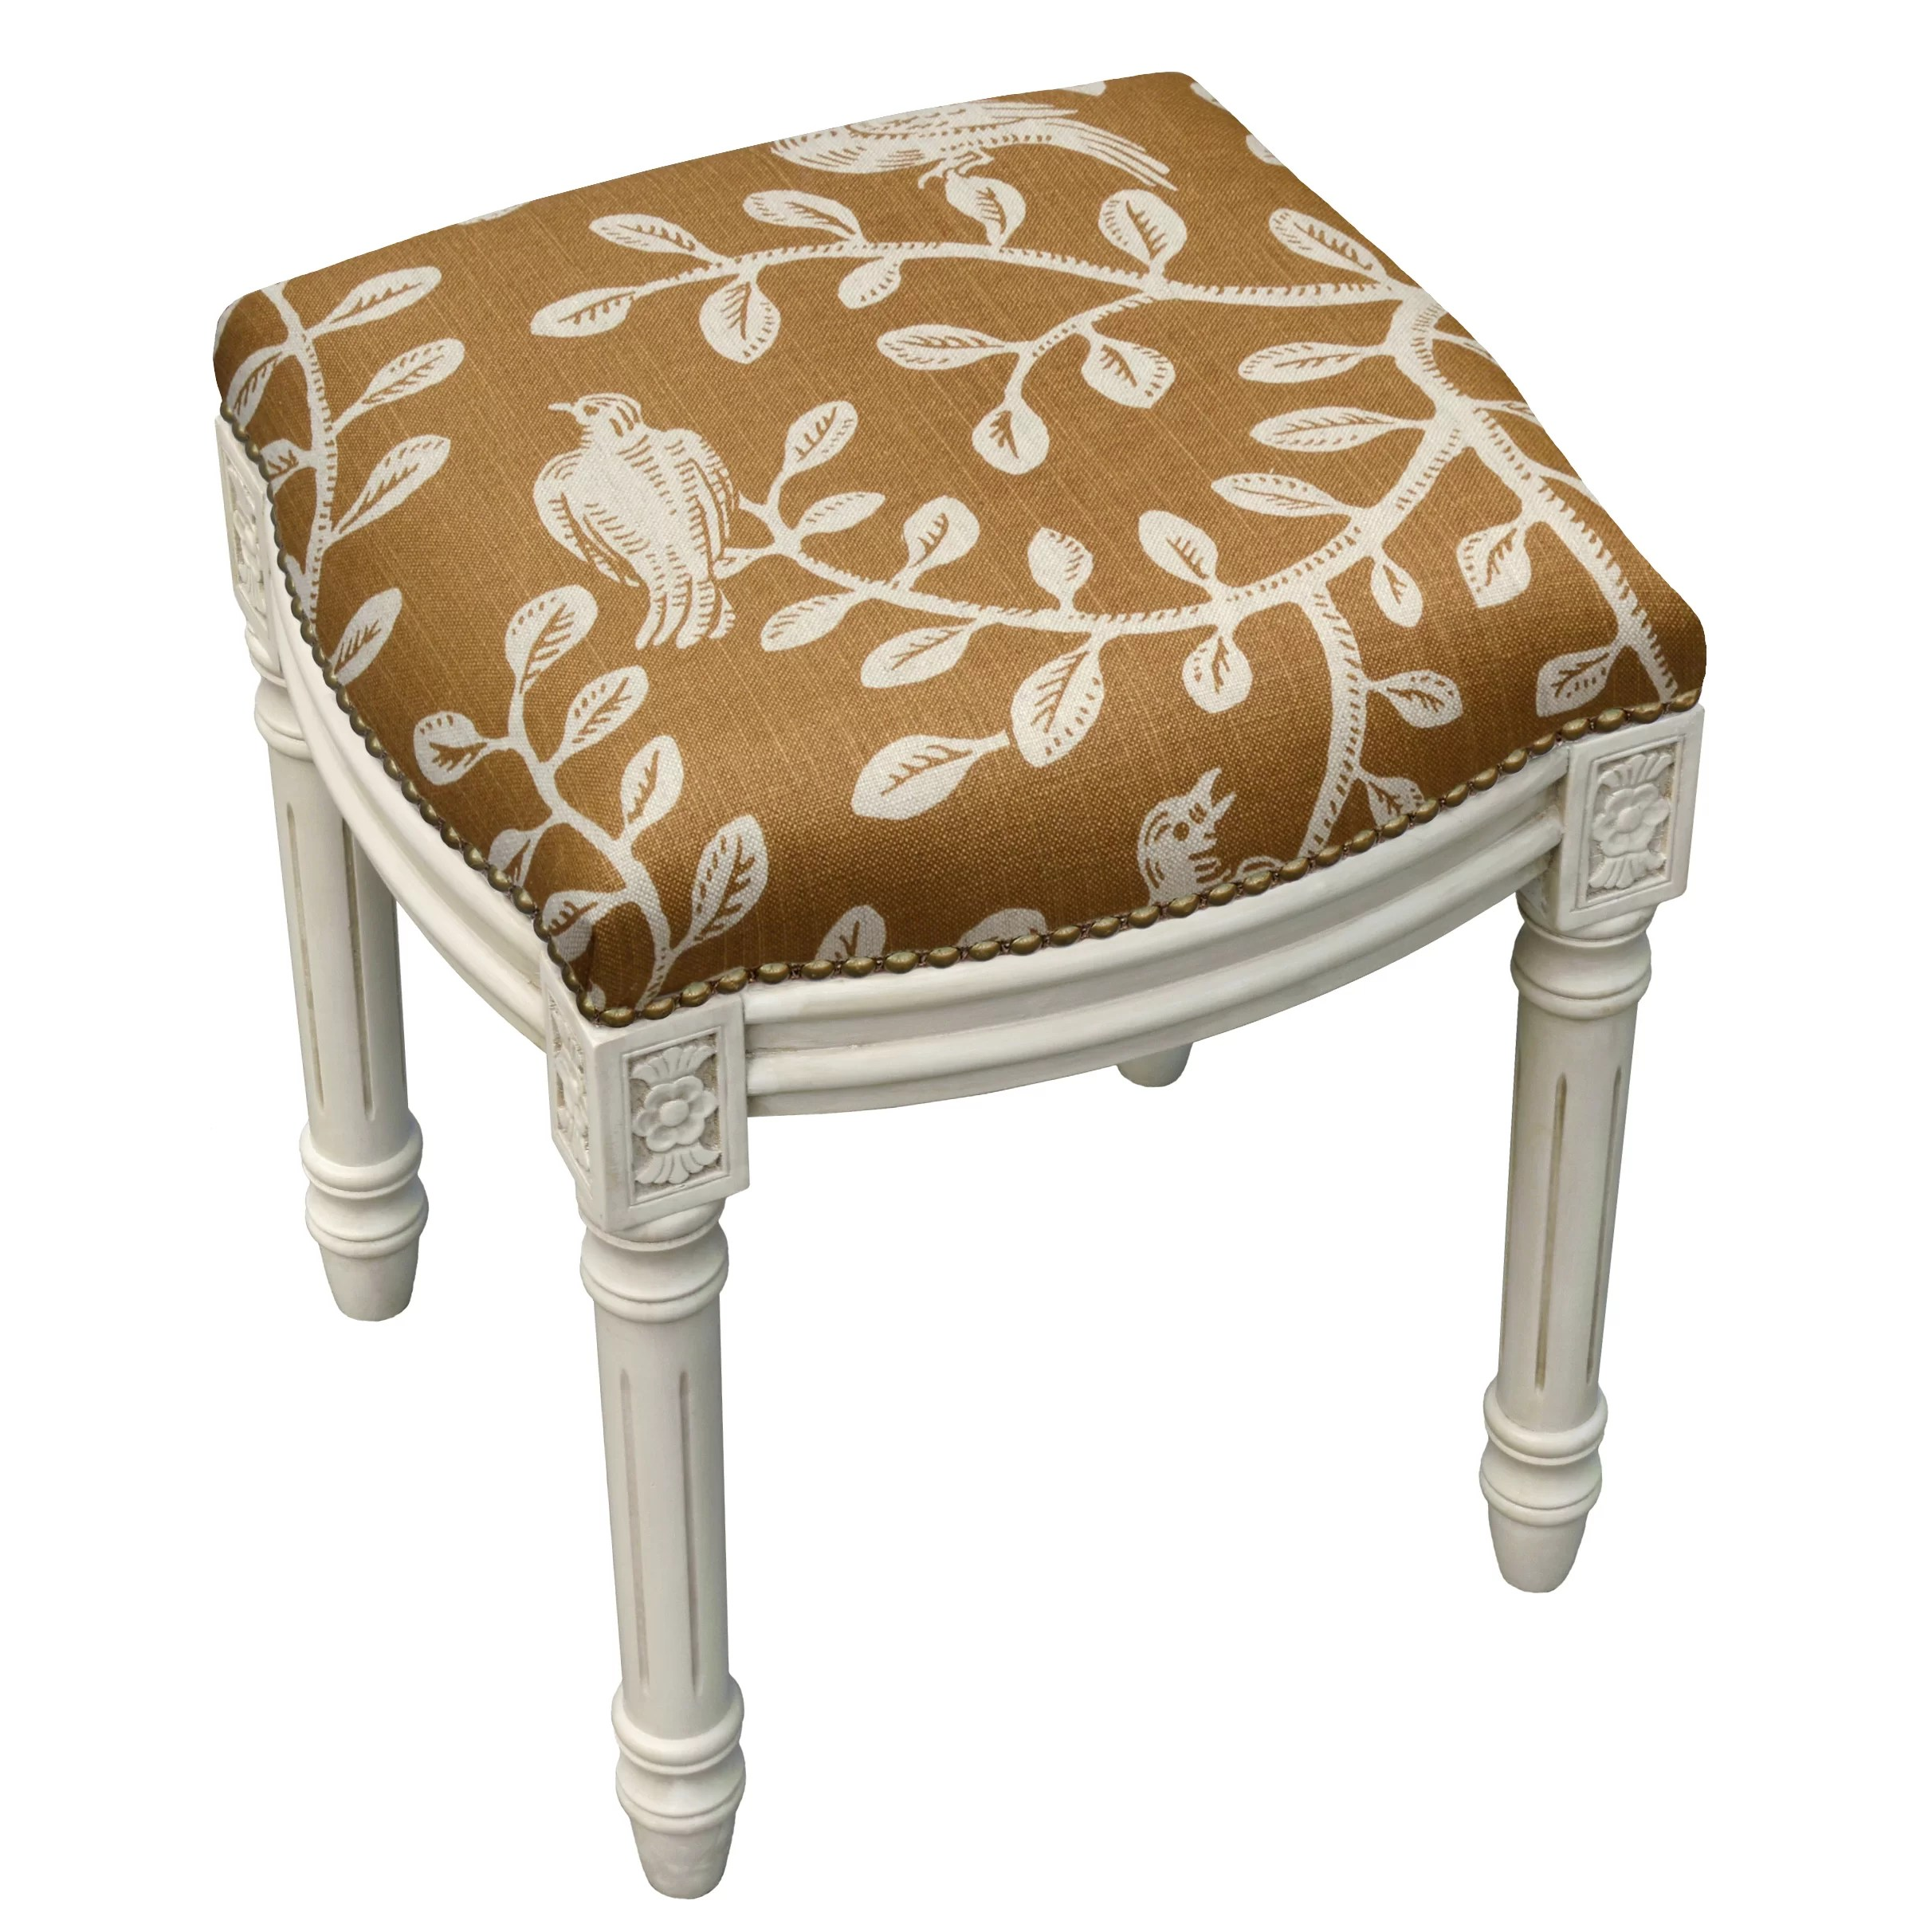 Upholstered Vanity Chair 123 Creations Birds And Vines Linen Upholstered Vanity